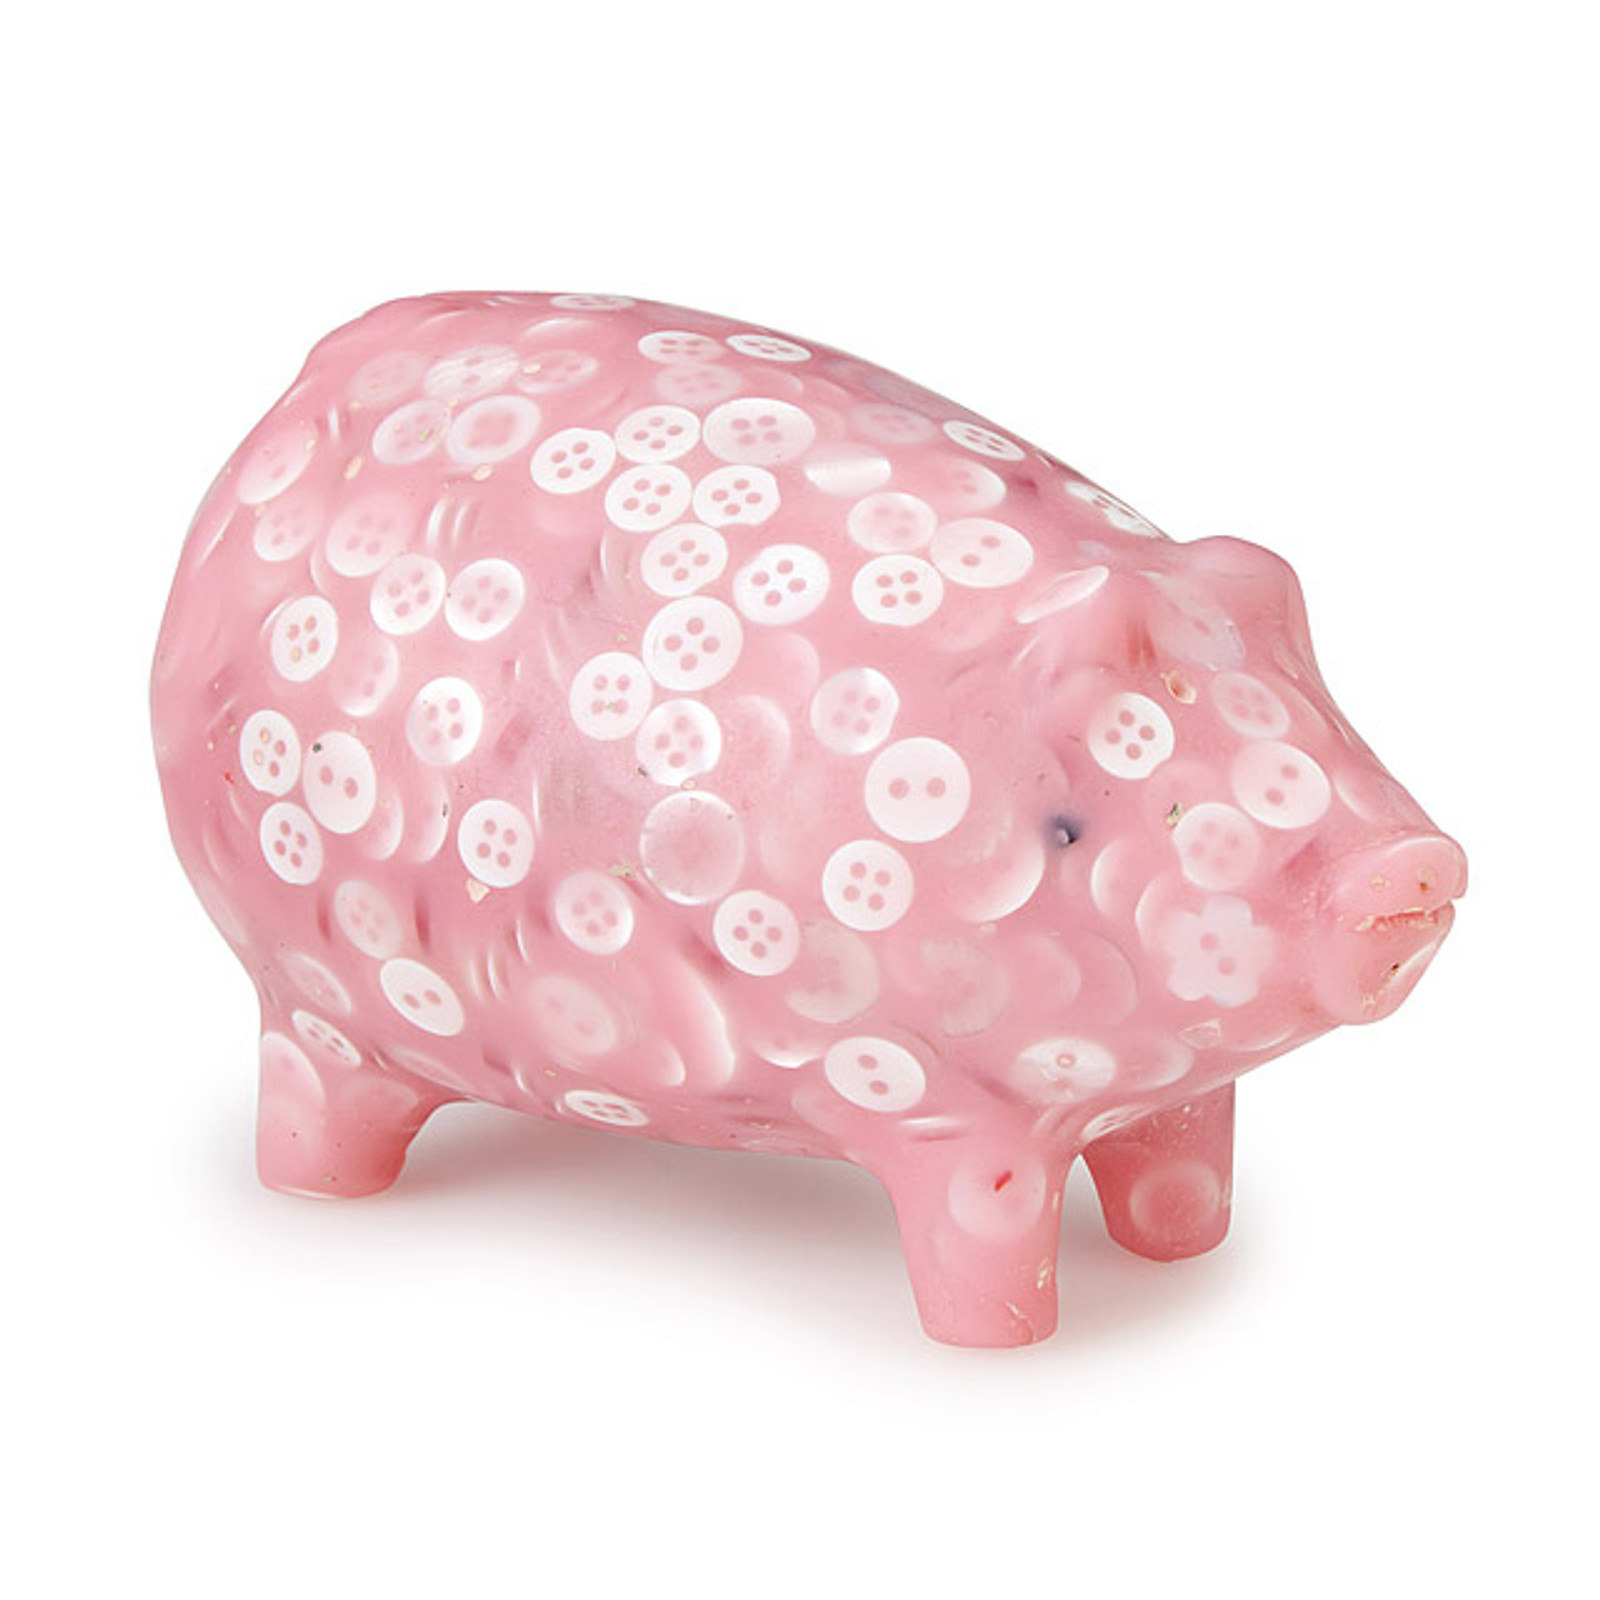 Chancho The Good Luck Pig